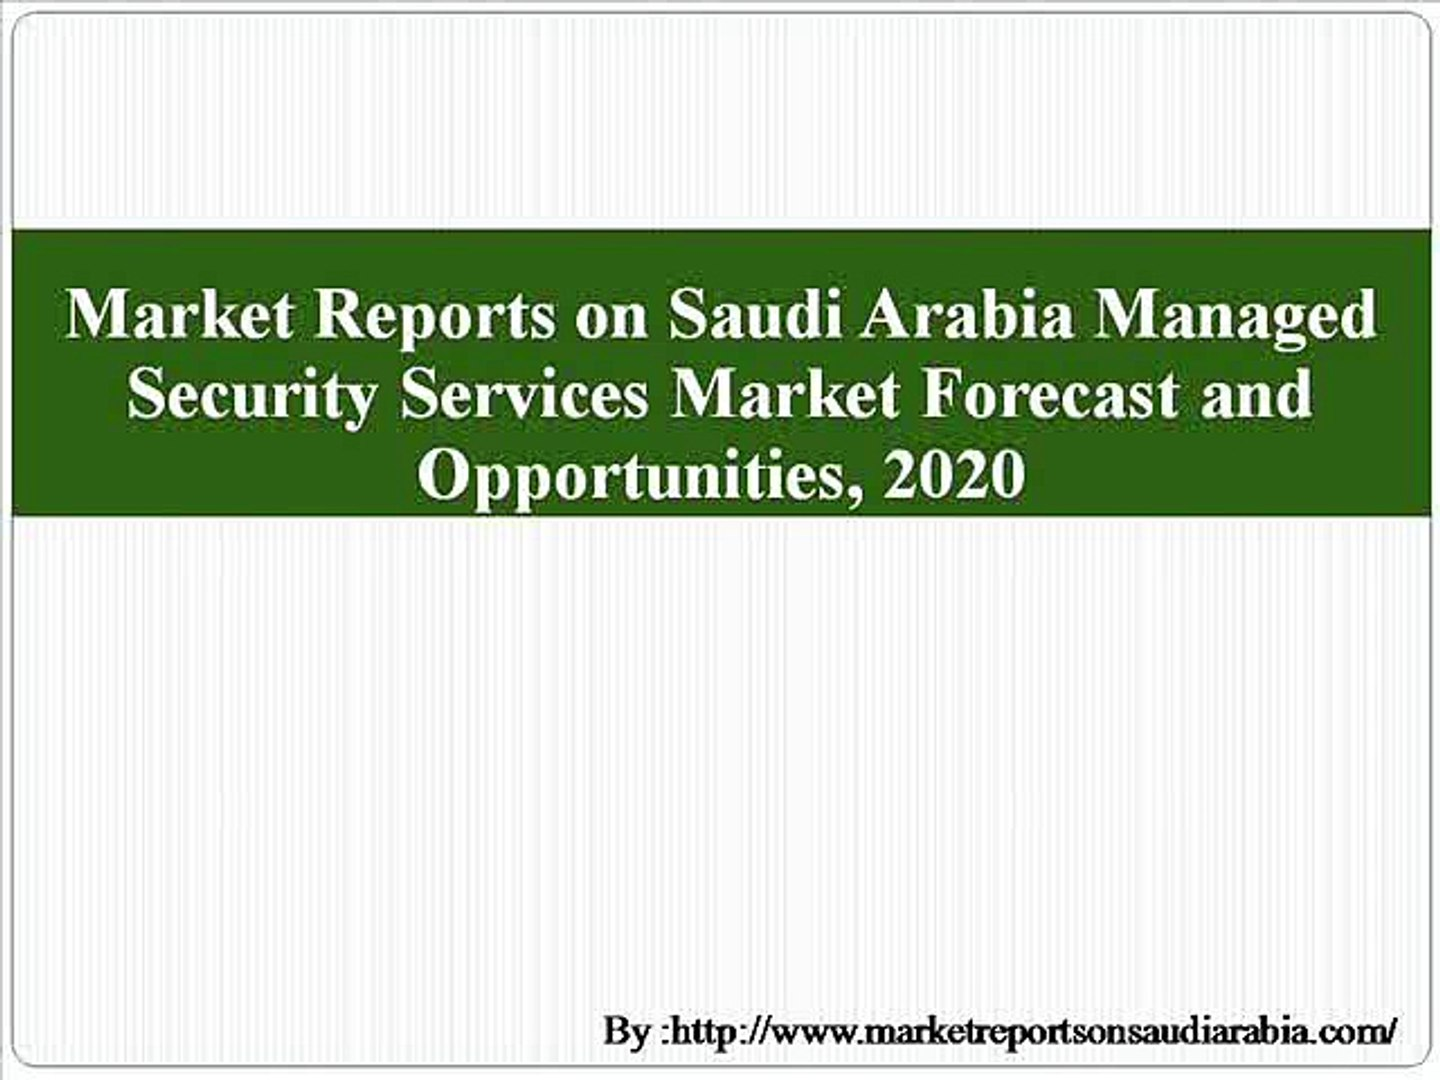 Market Reports on Saudi Arabia Managed Security Services Market